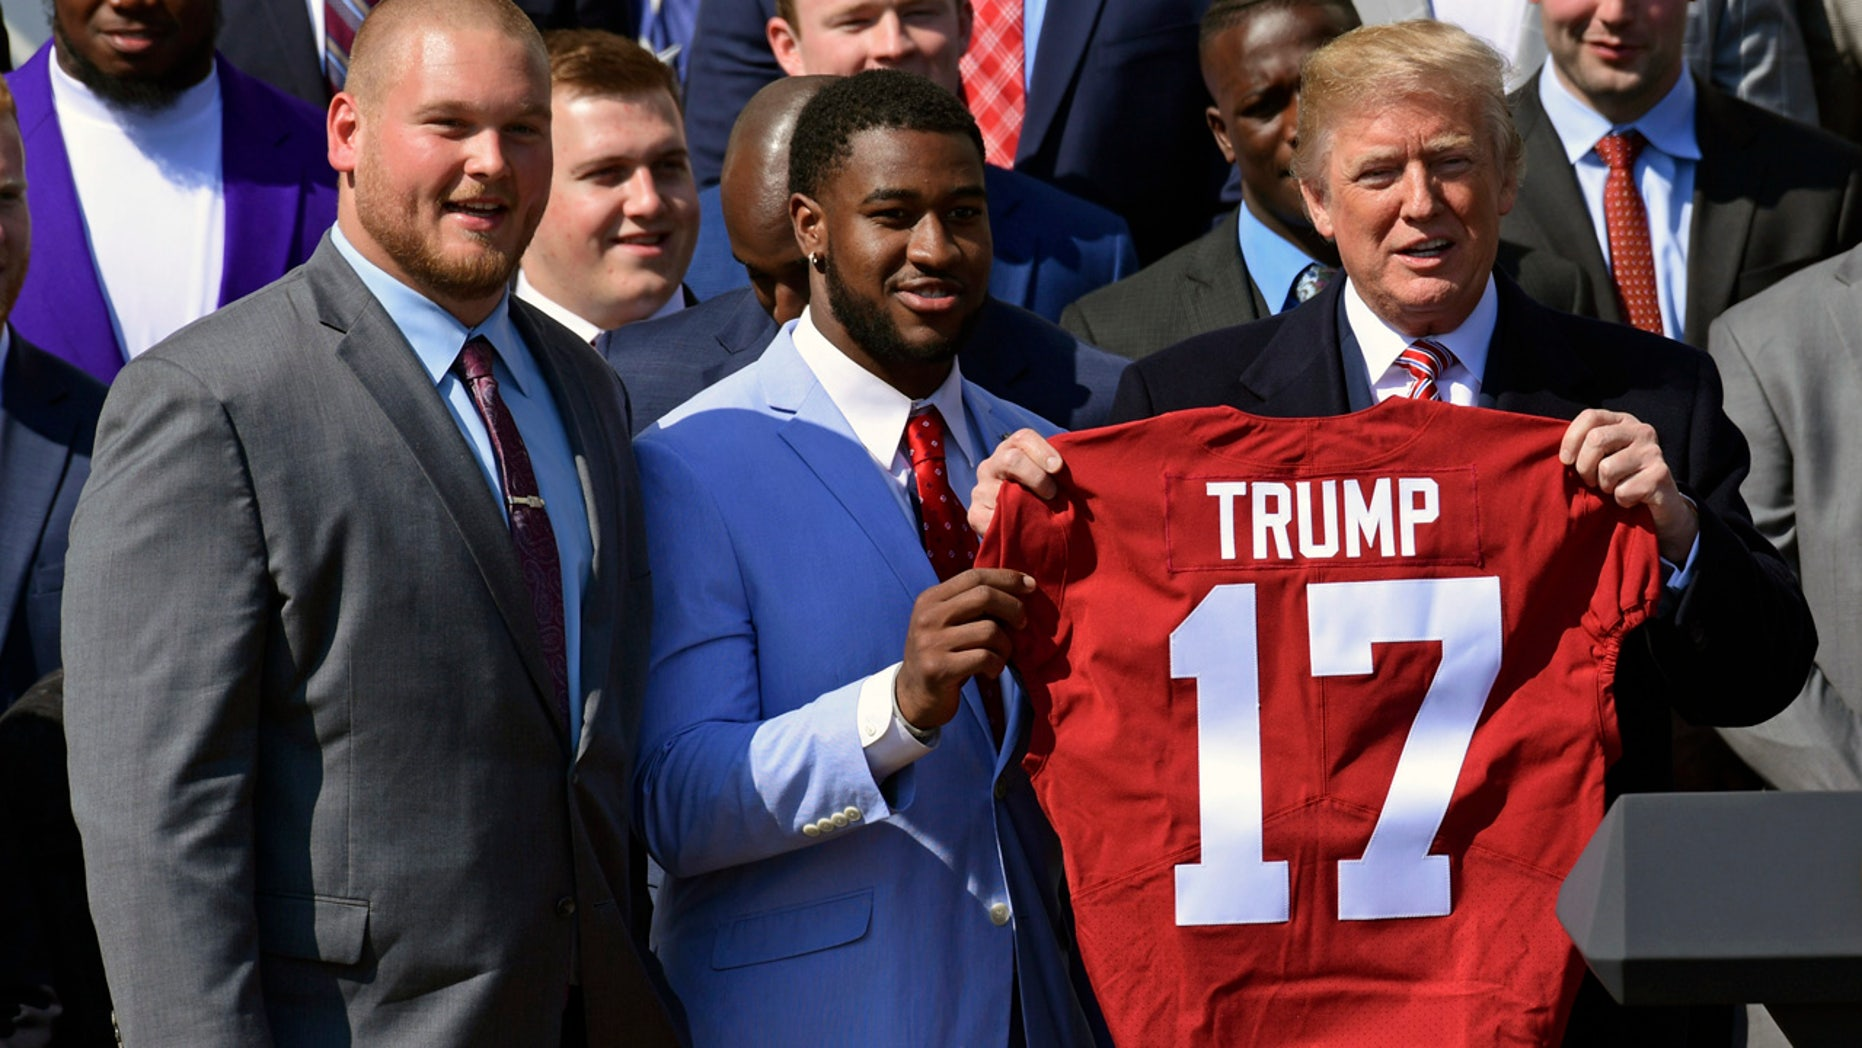 President Trump was presented with a jersey by Alabama team captains Bradley Bozeman, left, and Rashaan Evans on the South Lawn of the White House Tuesday.